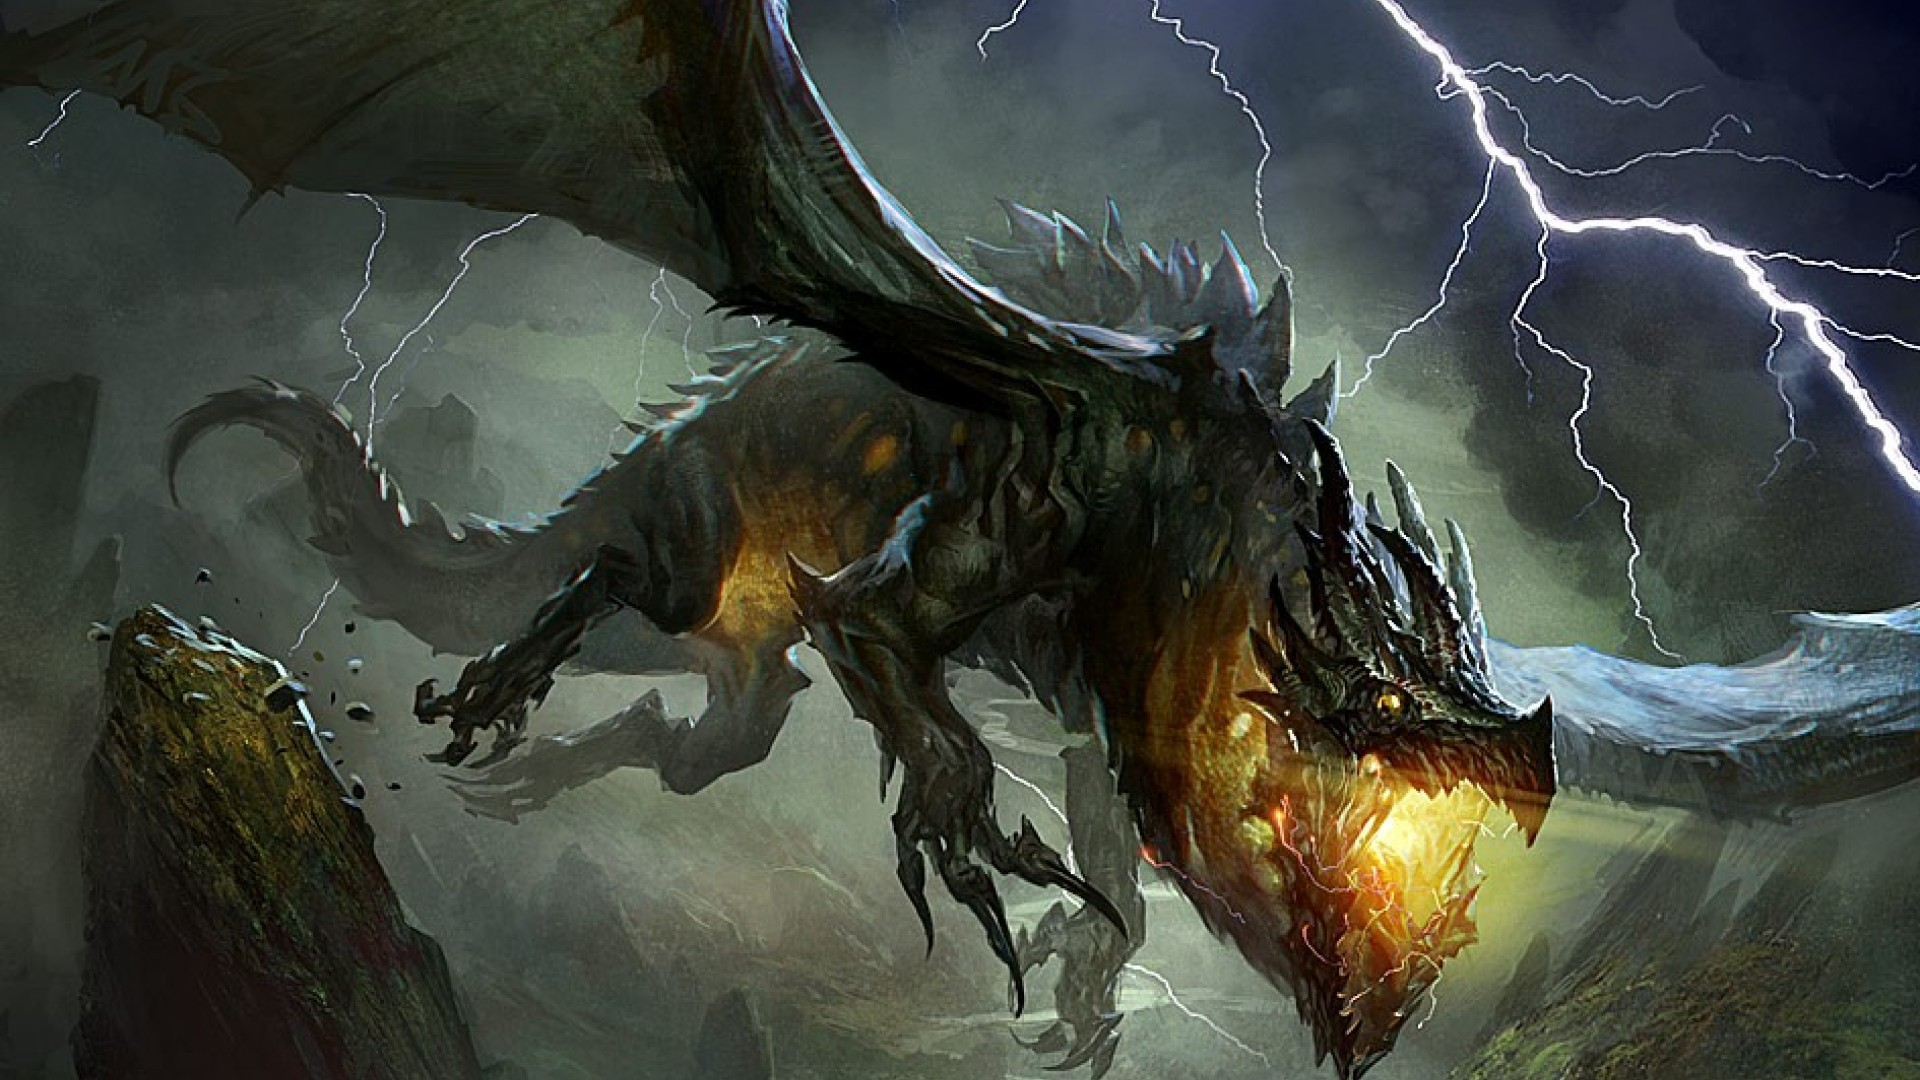 Res: 1920x1080, Magic: The Gathering